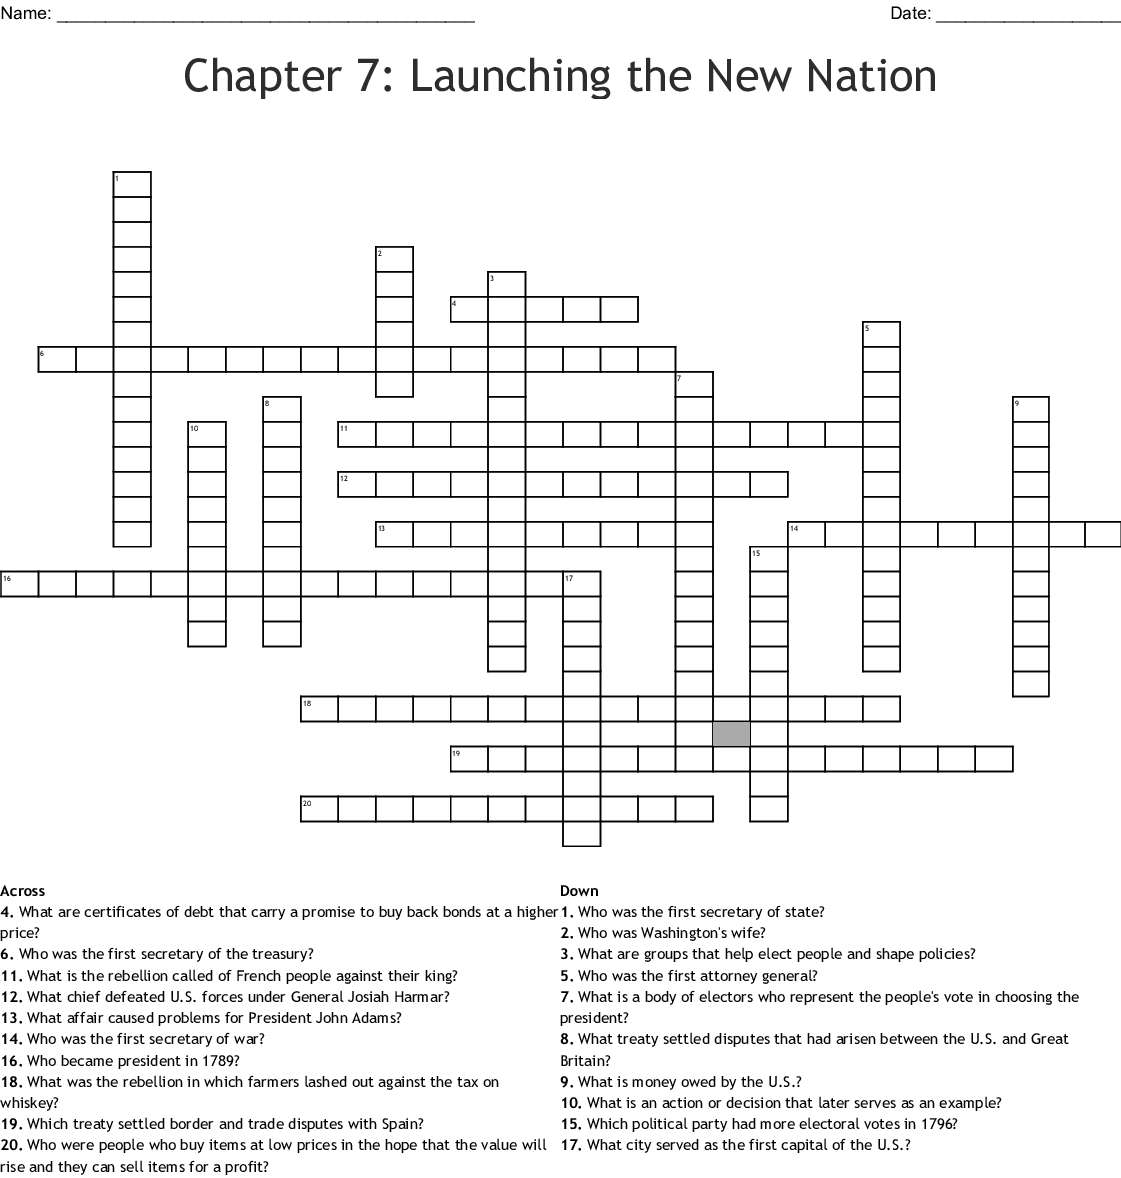 Launching A New Nation Ch 7 Crossword Word